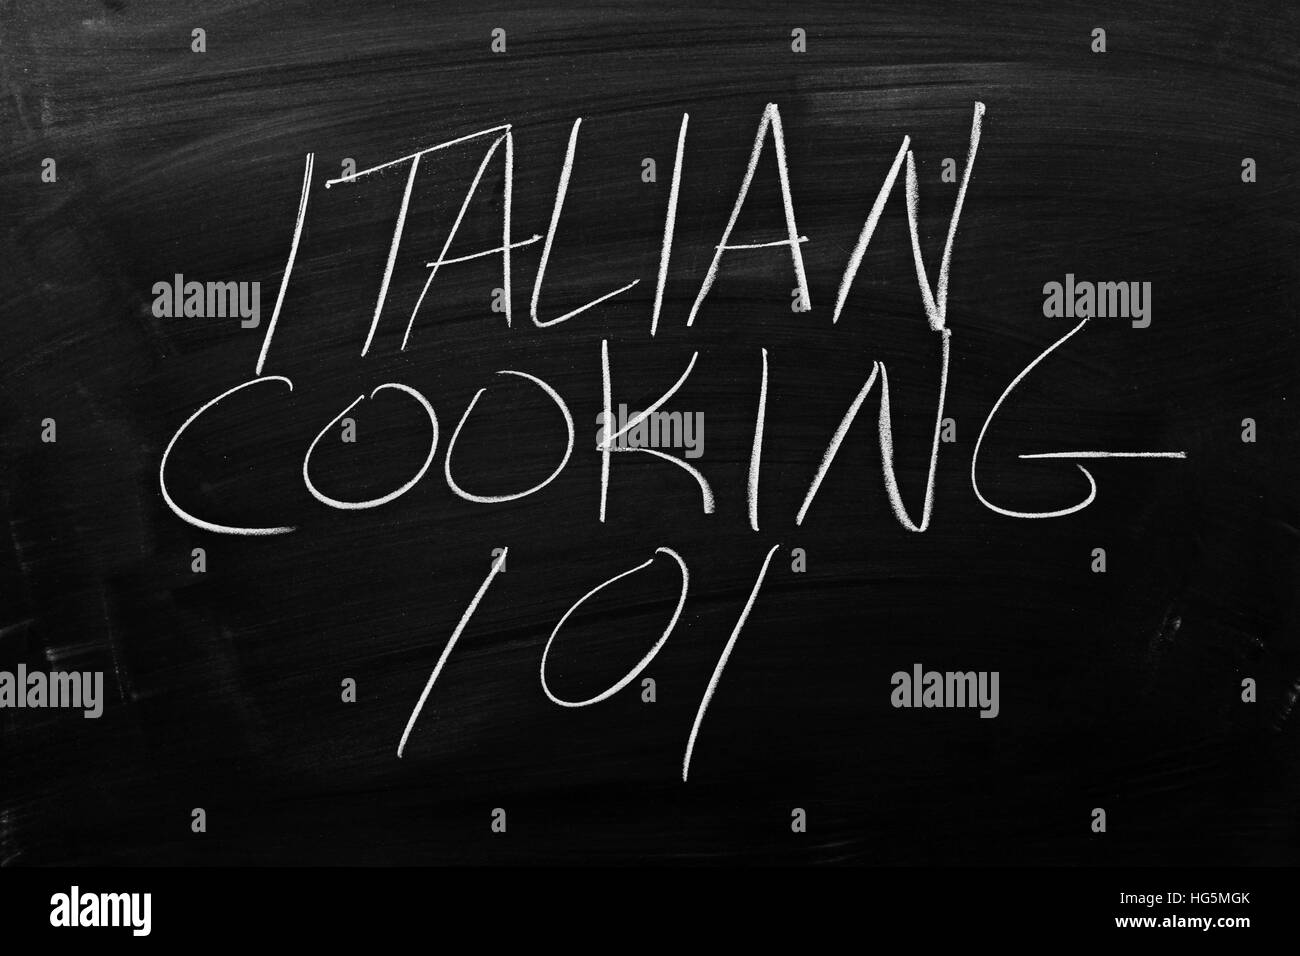 The words 'Italian Cooking 101' on a blackboard in chalk - Stock Image